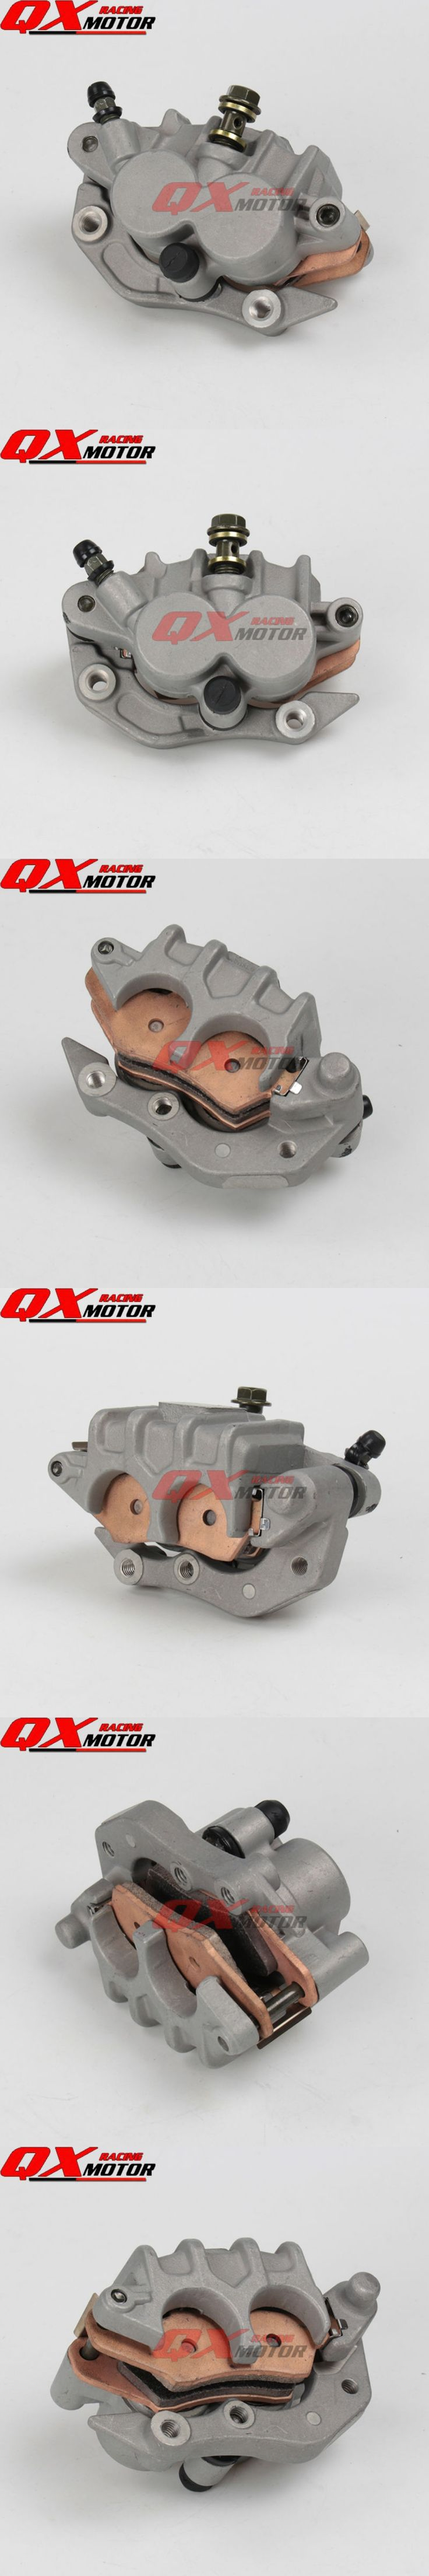 Front Brake Caliper with Good Pads For 2004-2012 CR125 CR250 CRF250 CRF450 X R Xmotos Kayo T4/T6 Dirt Bikes Motocross